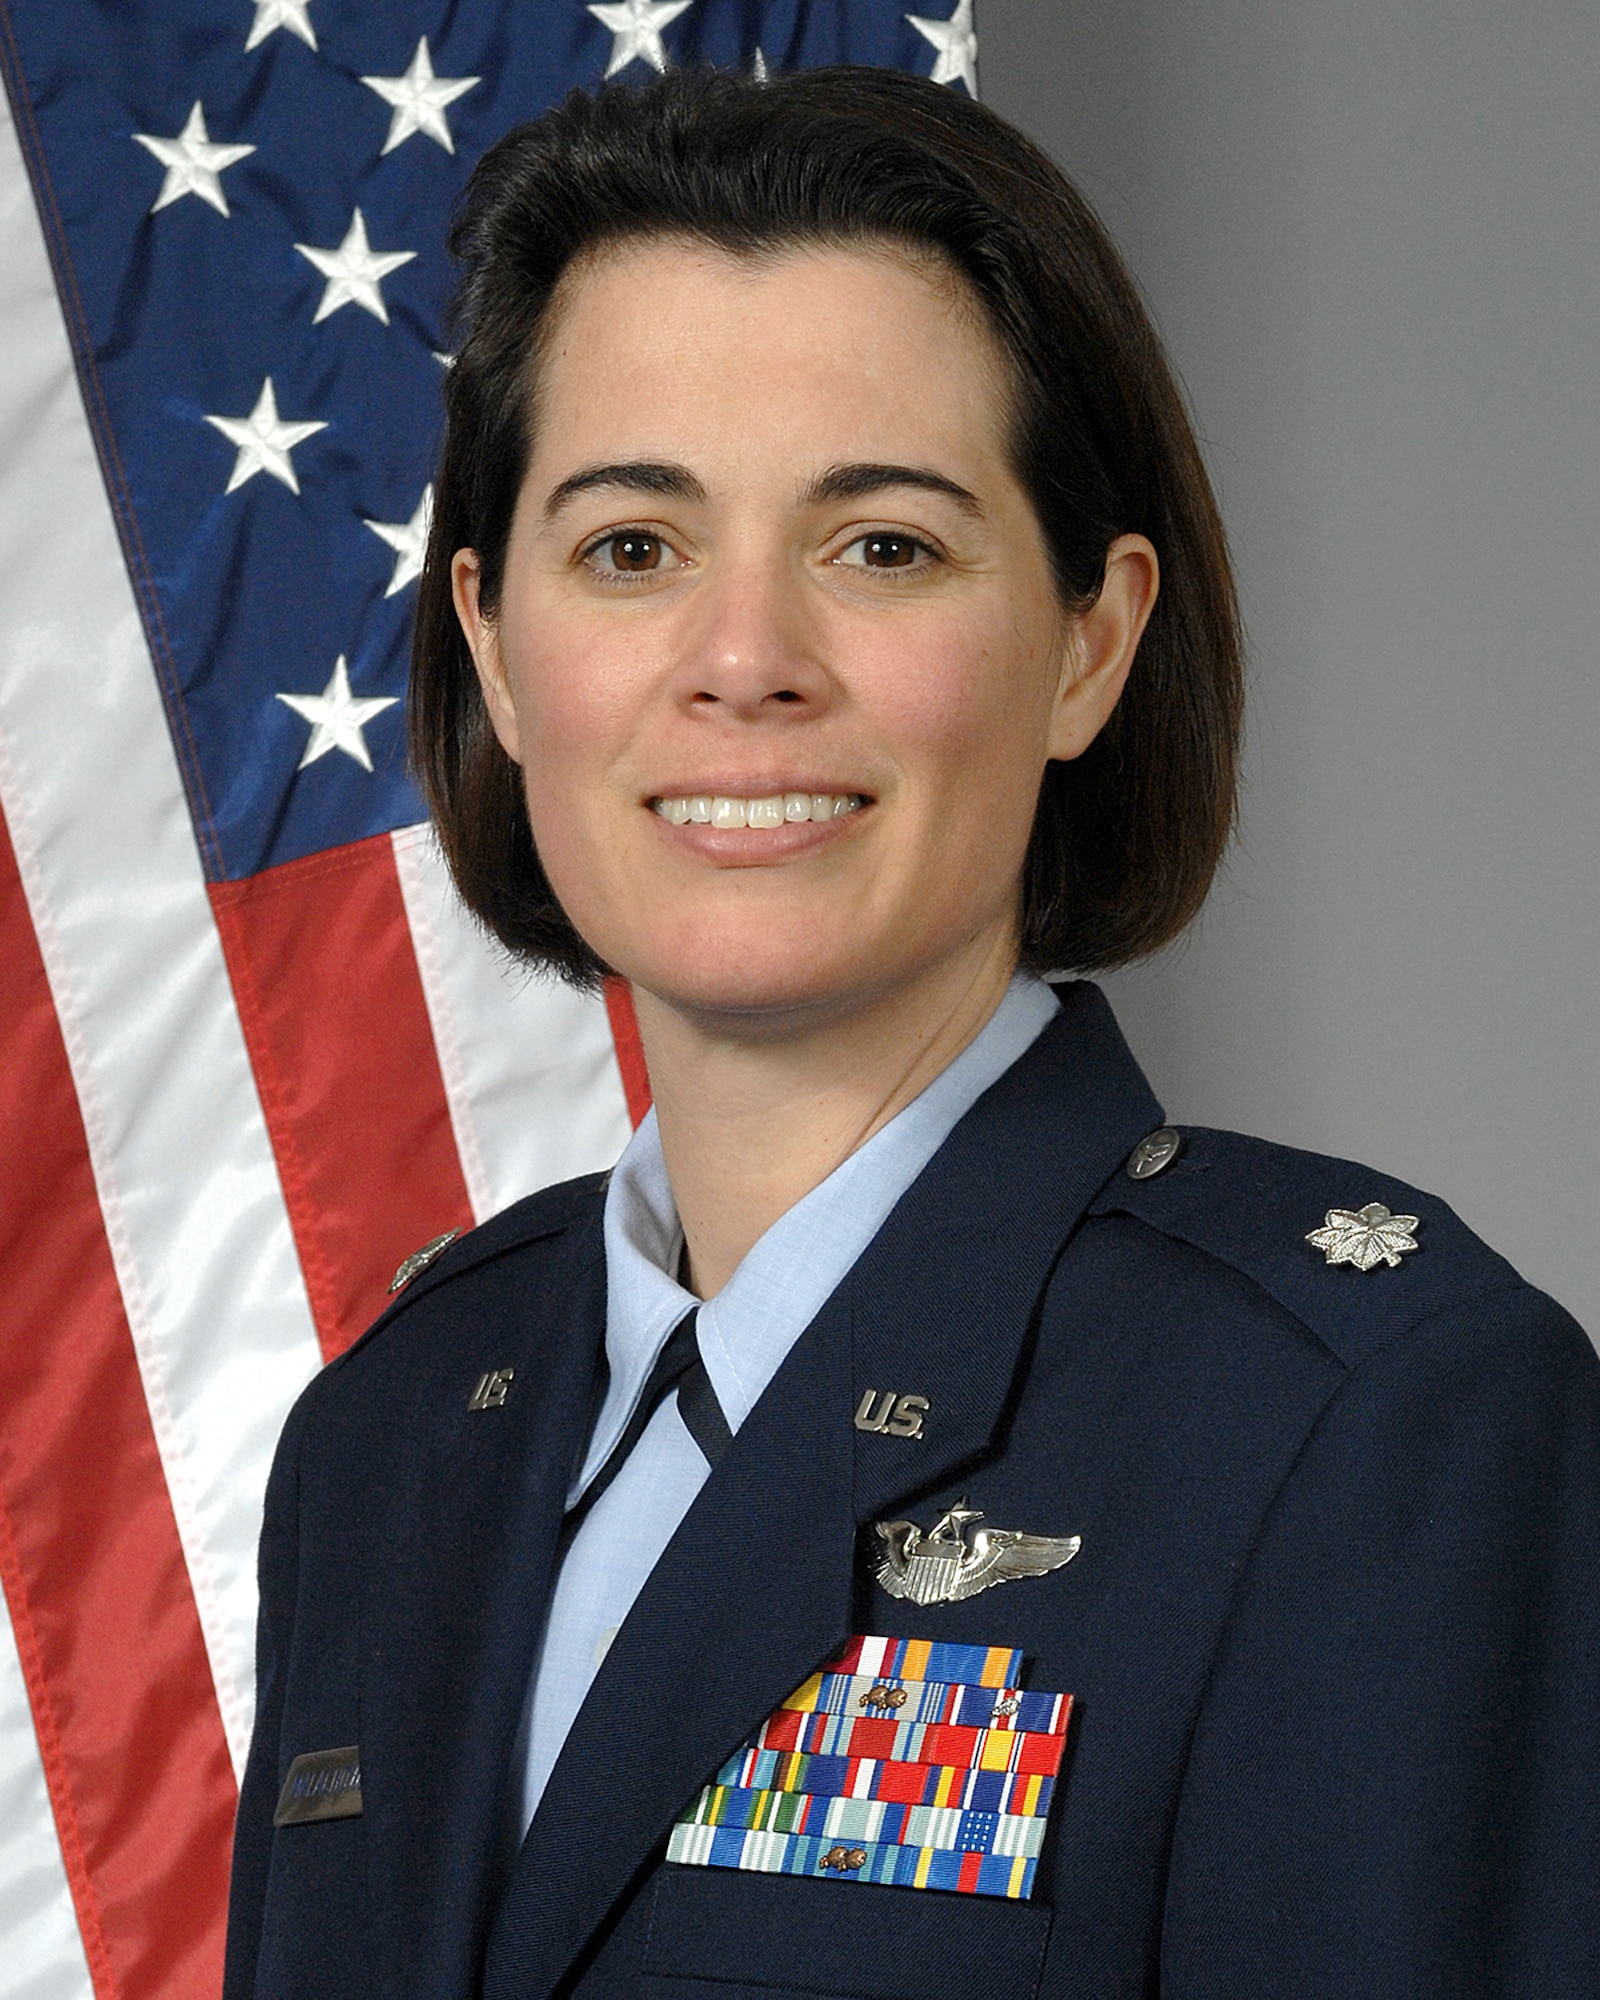 """U.S. Air Force Lt. Col. Nicole Malachowski is one of 14 Airmen in the Air Force who will be profiled in a series titled """"American Airmen."""" The series will aim to highlight the diversity in today's Air Force in an effort to attract young recruits. The Air Force Recruiting Service will feature the series on the Air Force's commercial website, airforce.com. (U.S. Air Force photo/Released)"""